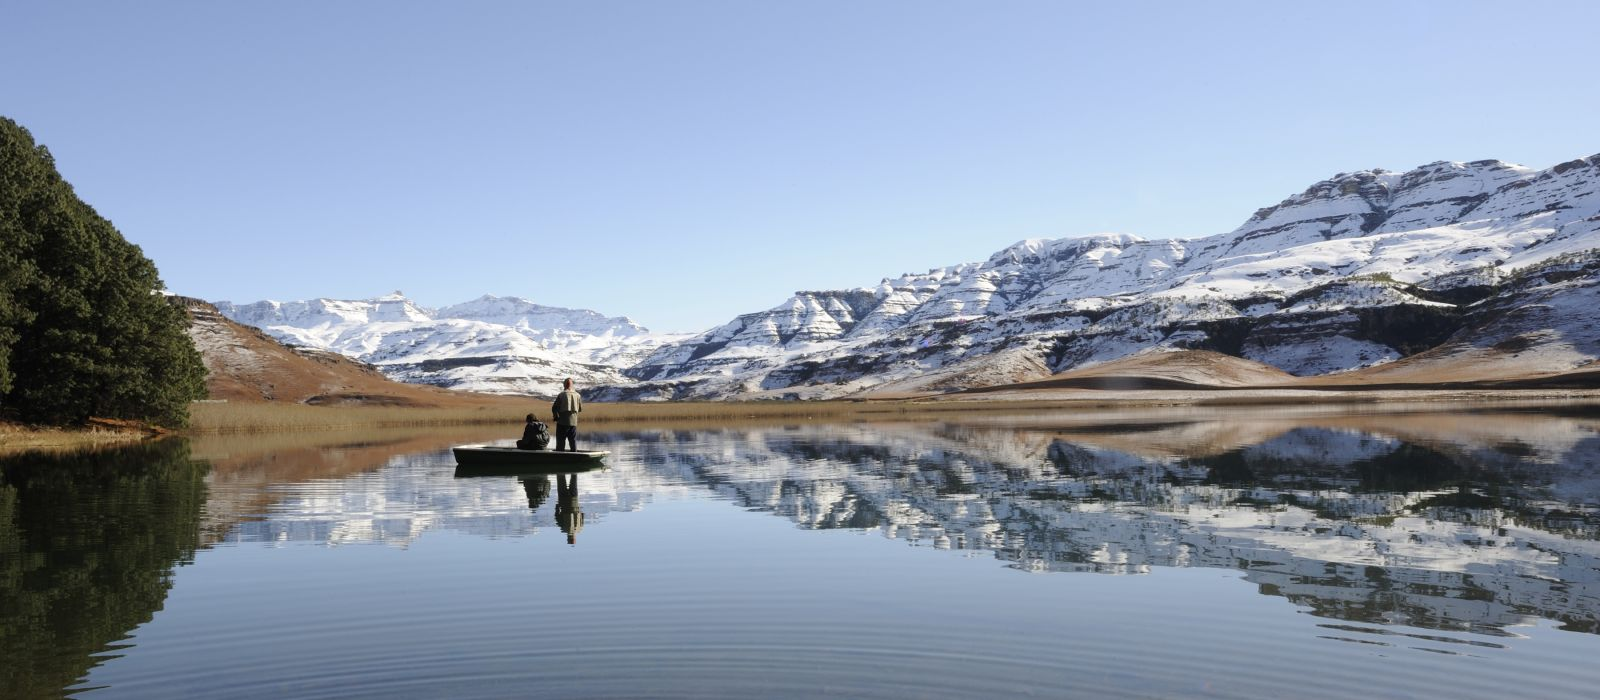 flyfishing for trout against a backdrop of snow at giants cup wilderness reserve, kwazulu natal, south africa - history of South Africa